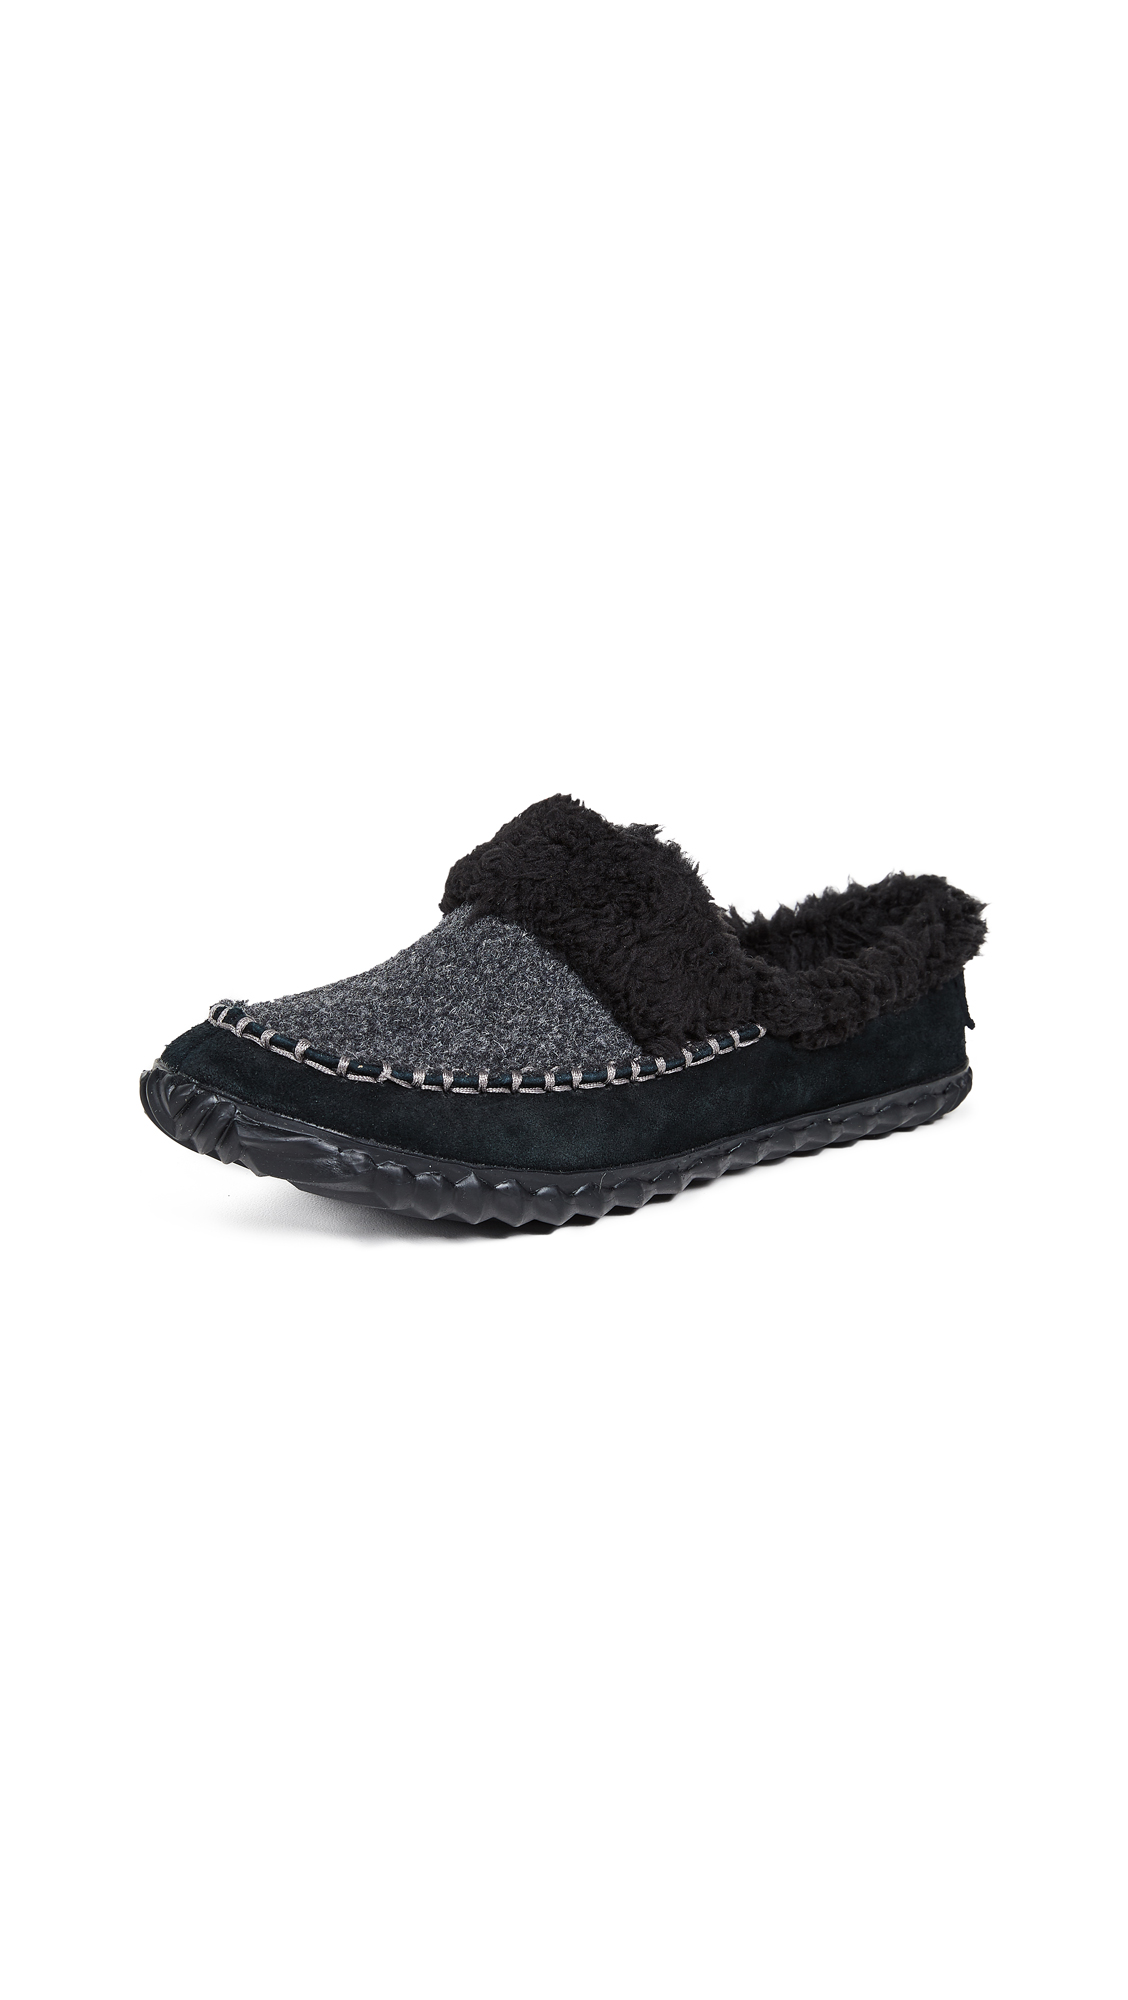 Sorel Out N About Slide Slip On Slippers - Black/Charcoal